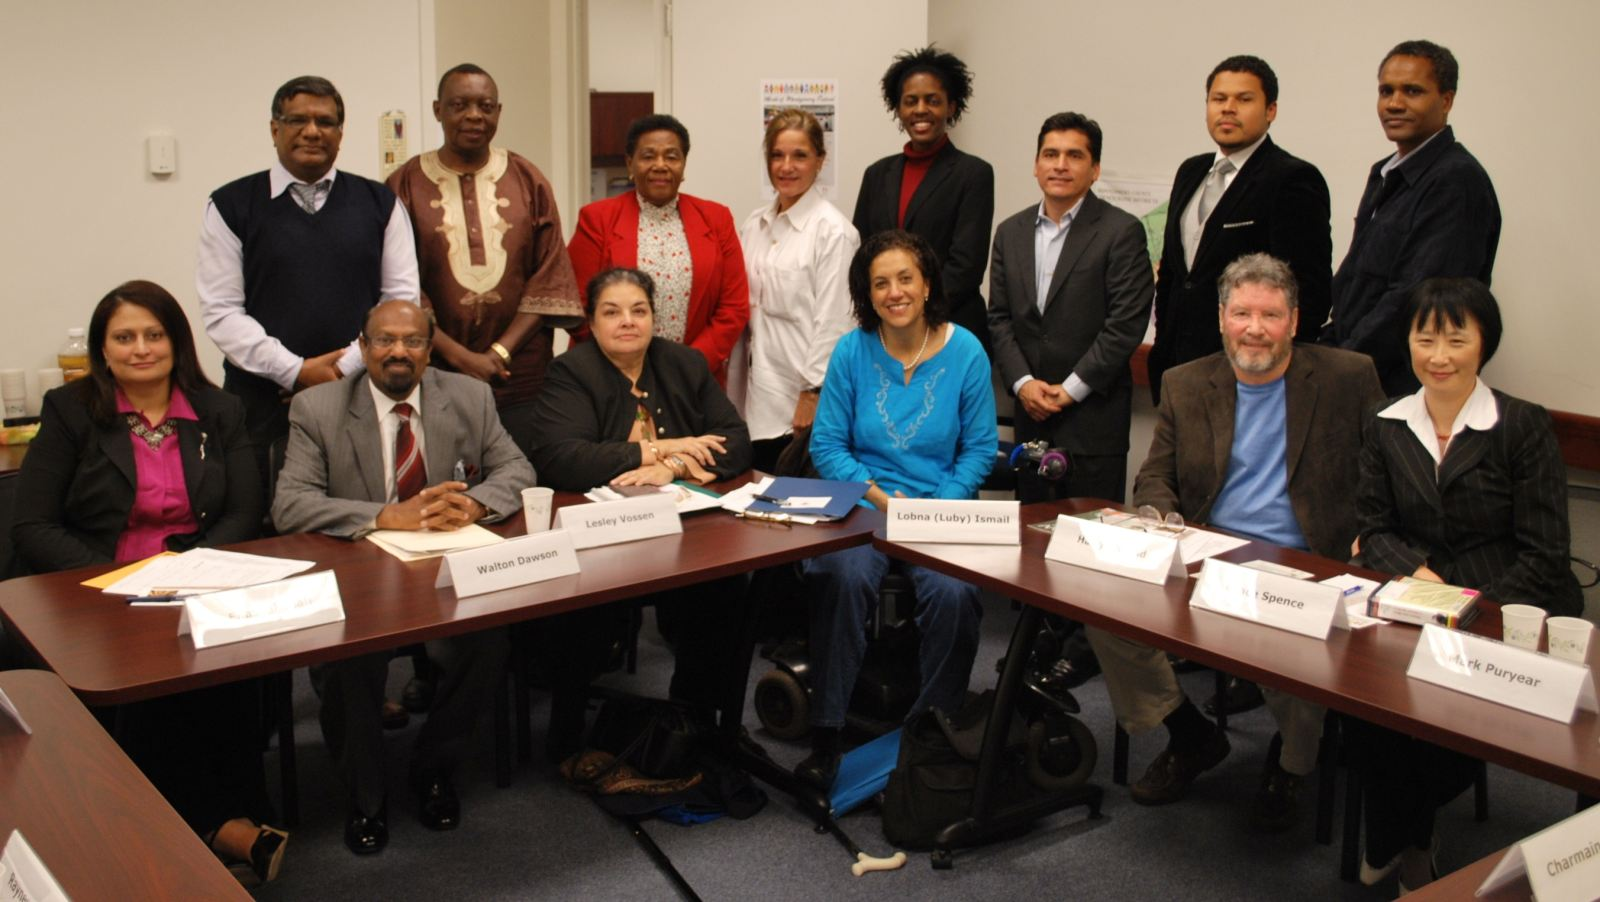 Members of the Committee for Ethnic Affairs